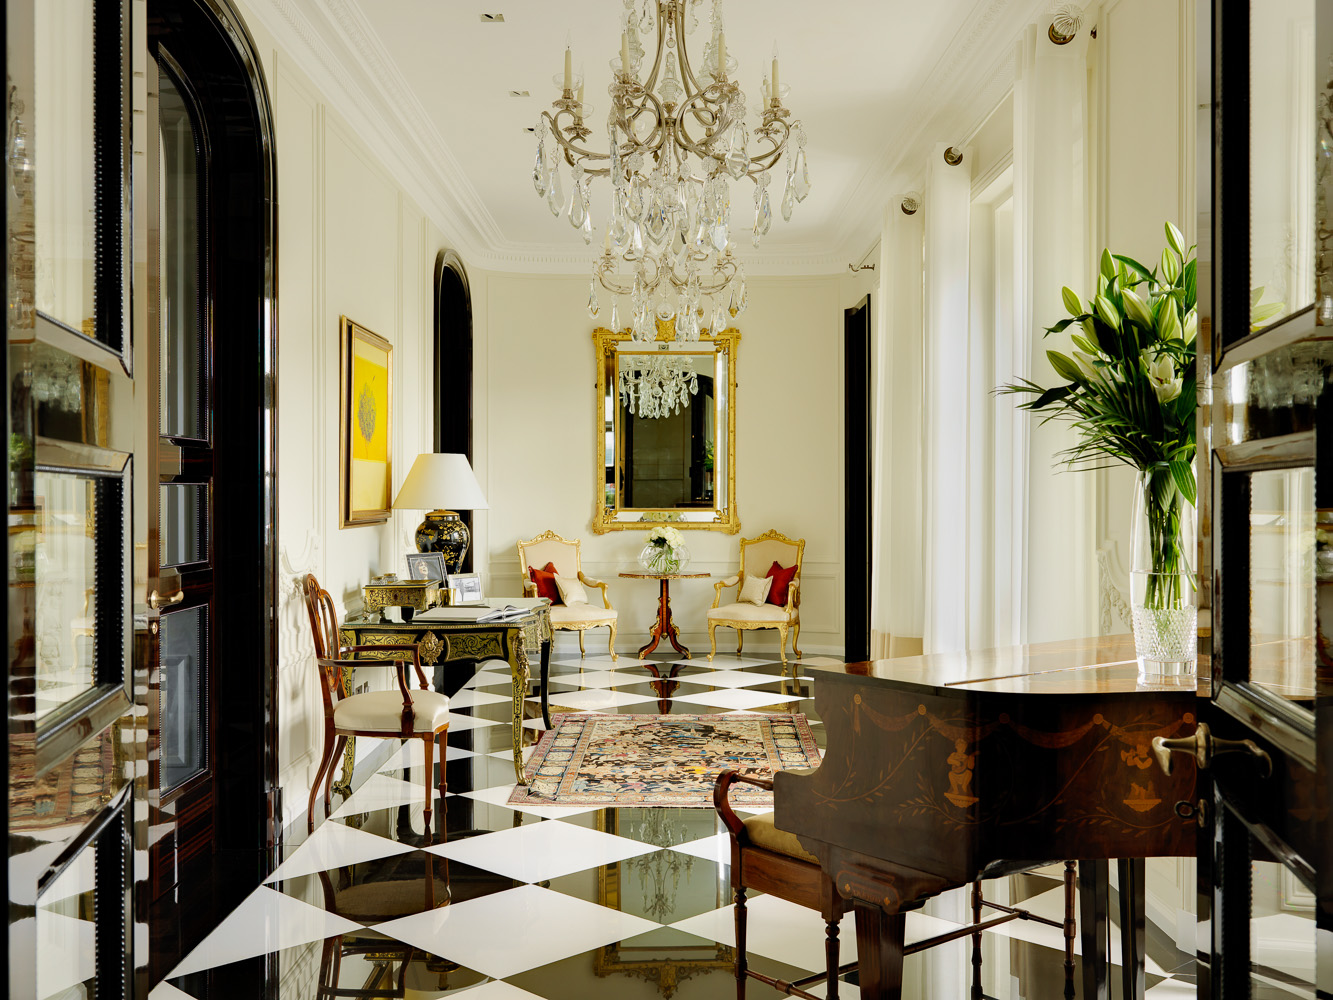 Park_Lane_Entrance_Hall-1.jpg